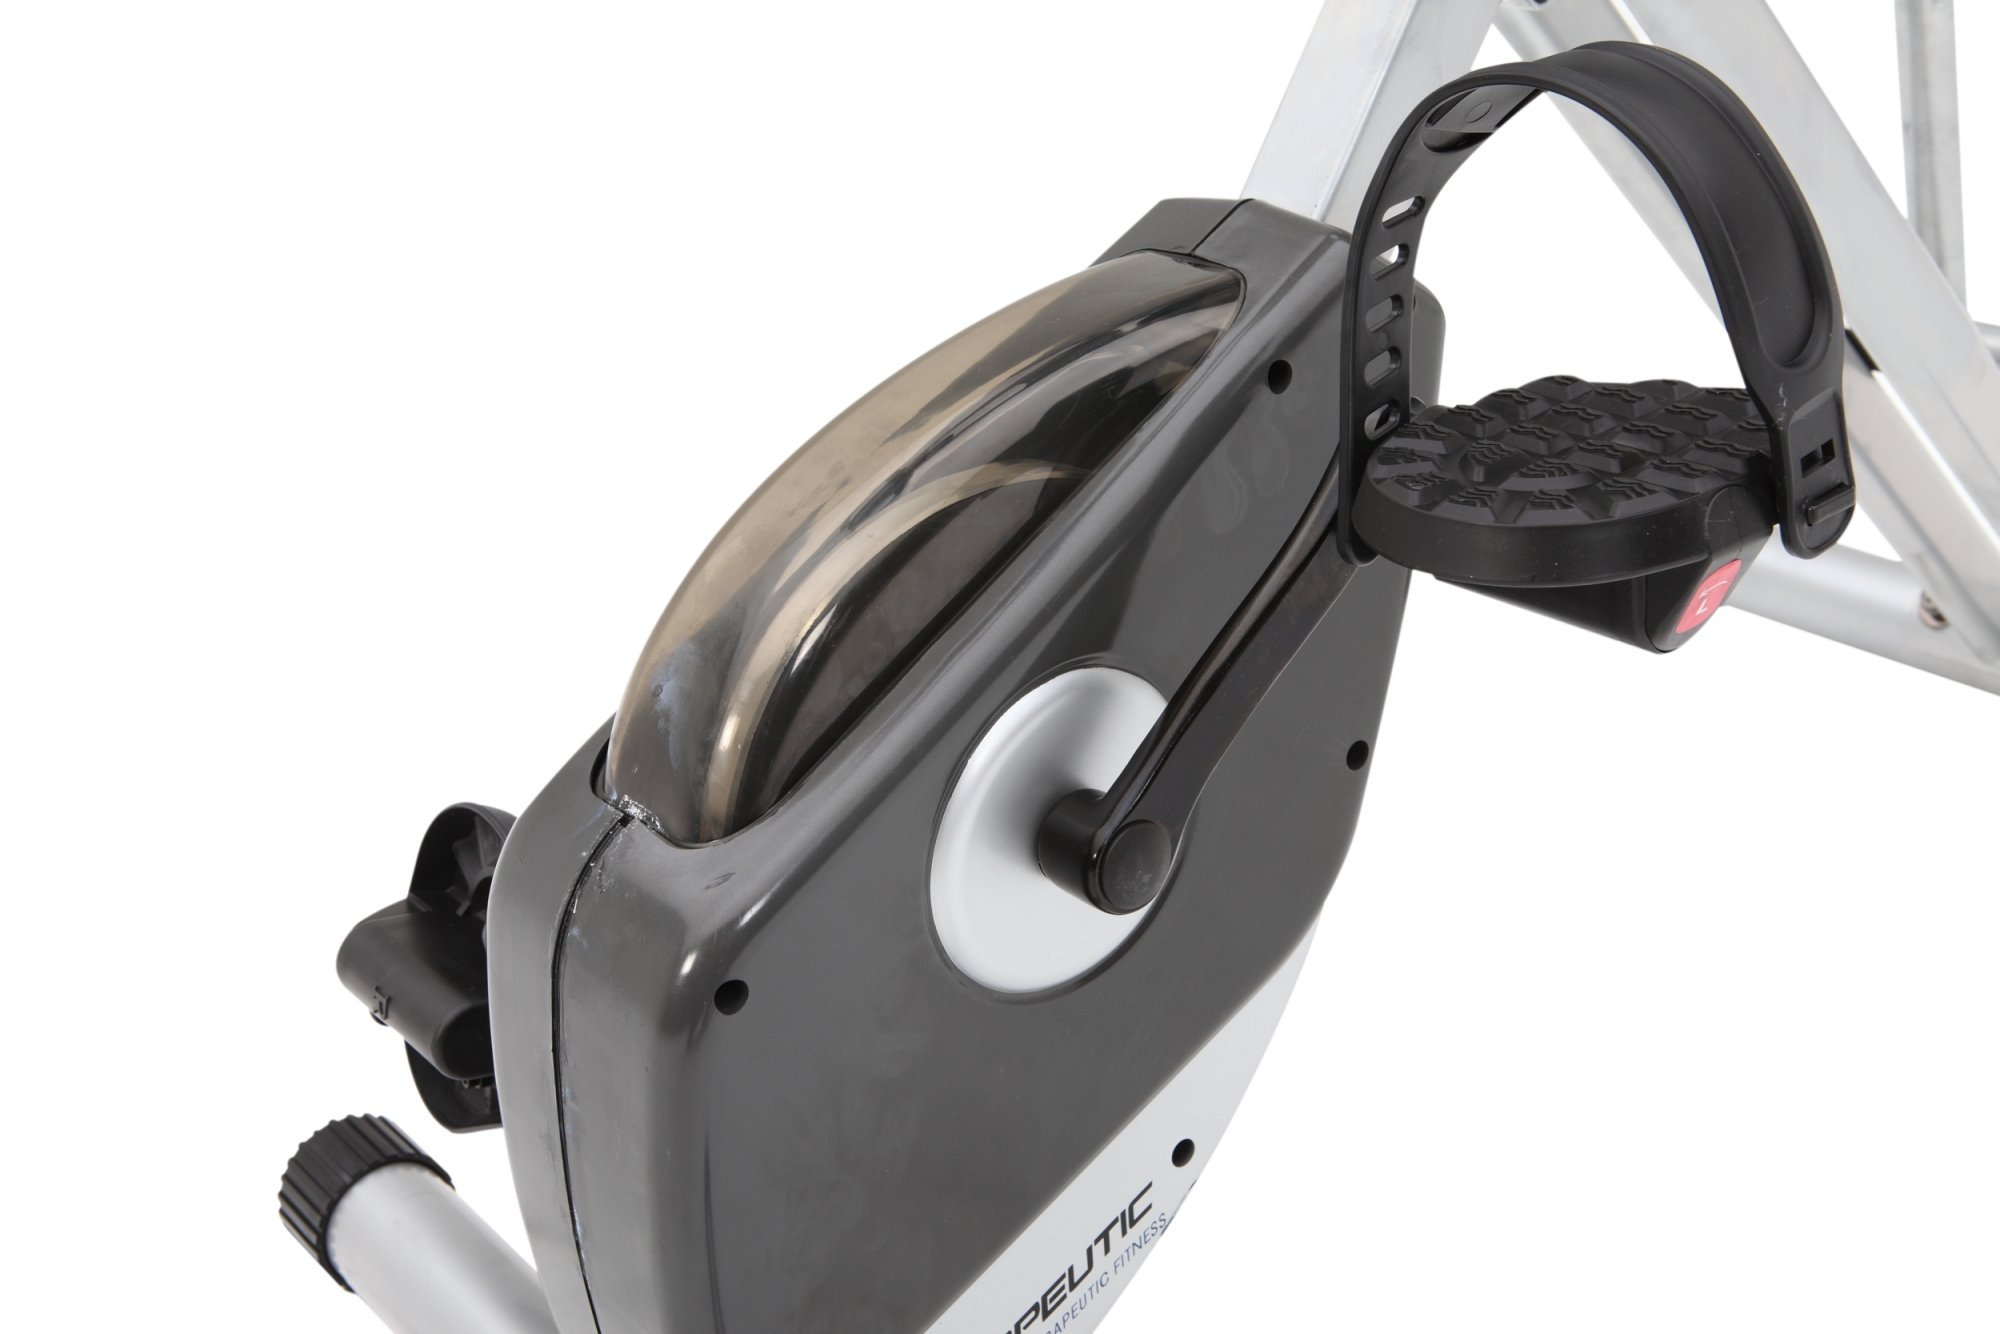 Exerpeutic Folding Magnetic Upright Exercise Bike with 300 lbs Weight Capacity by Exerpeutic (Image #9)